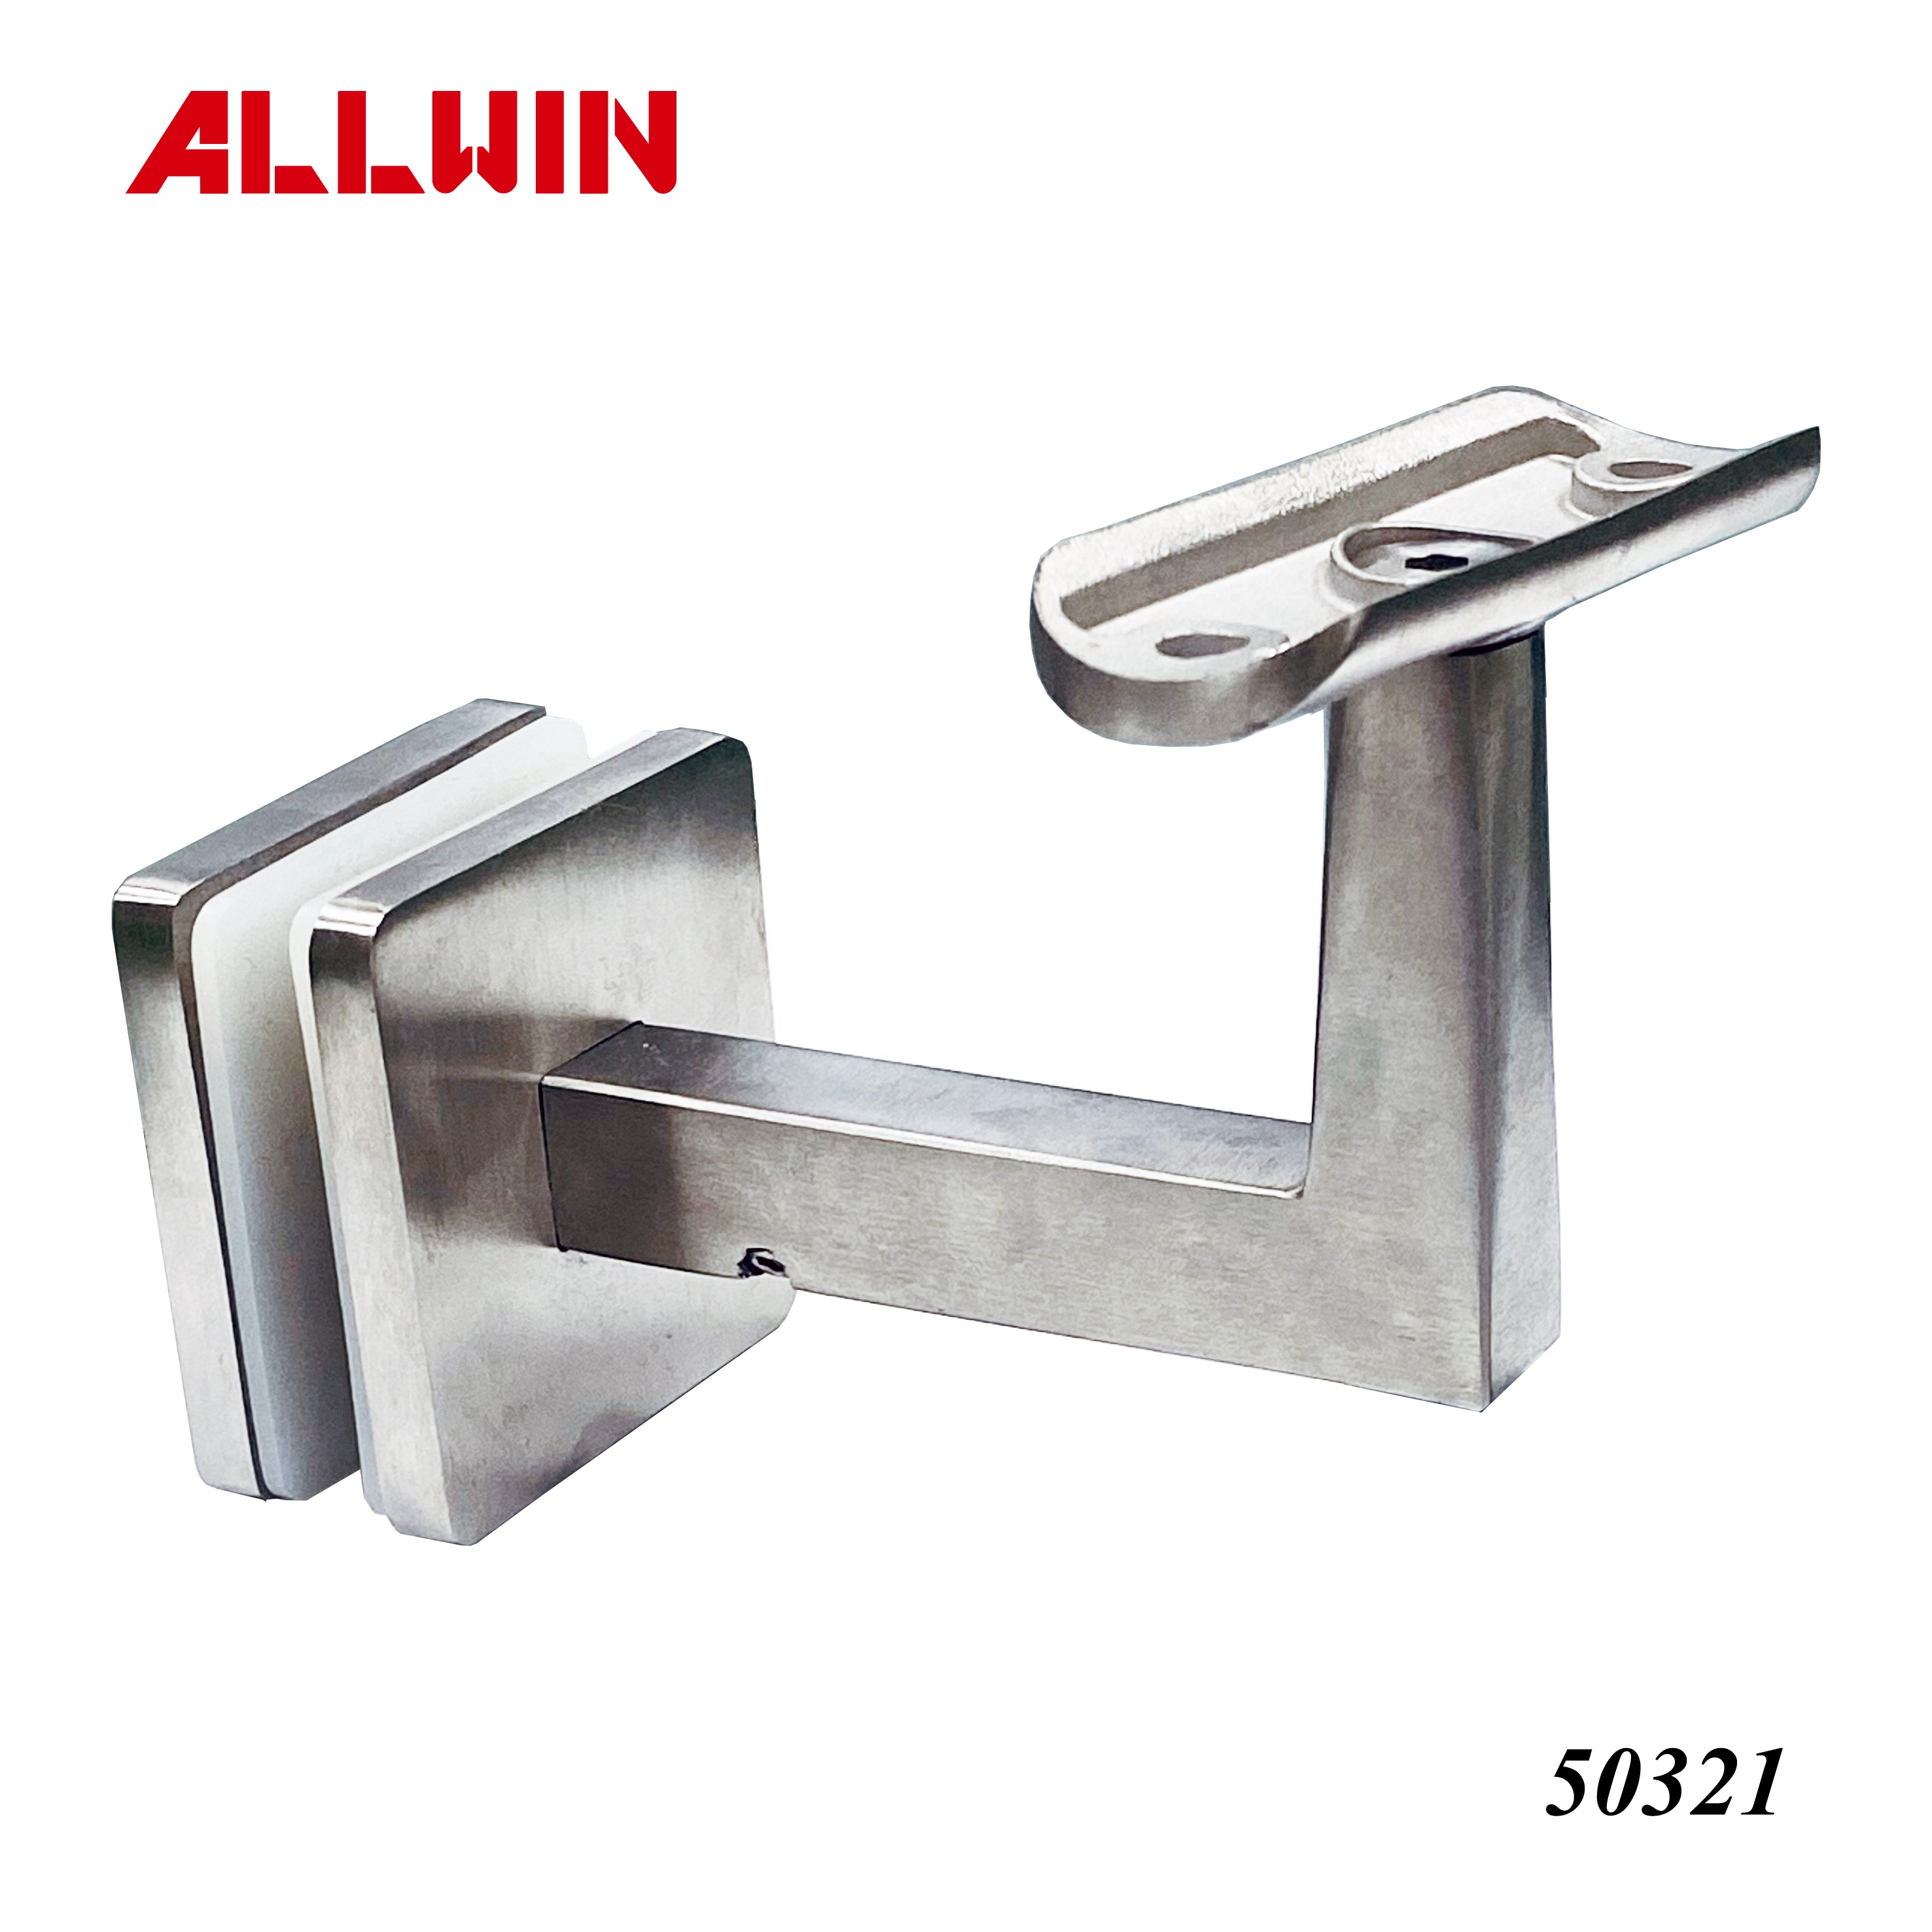 Stainless Steel Mounted Square Adjustable Handrail Bracket